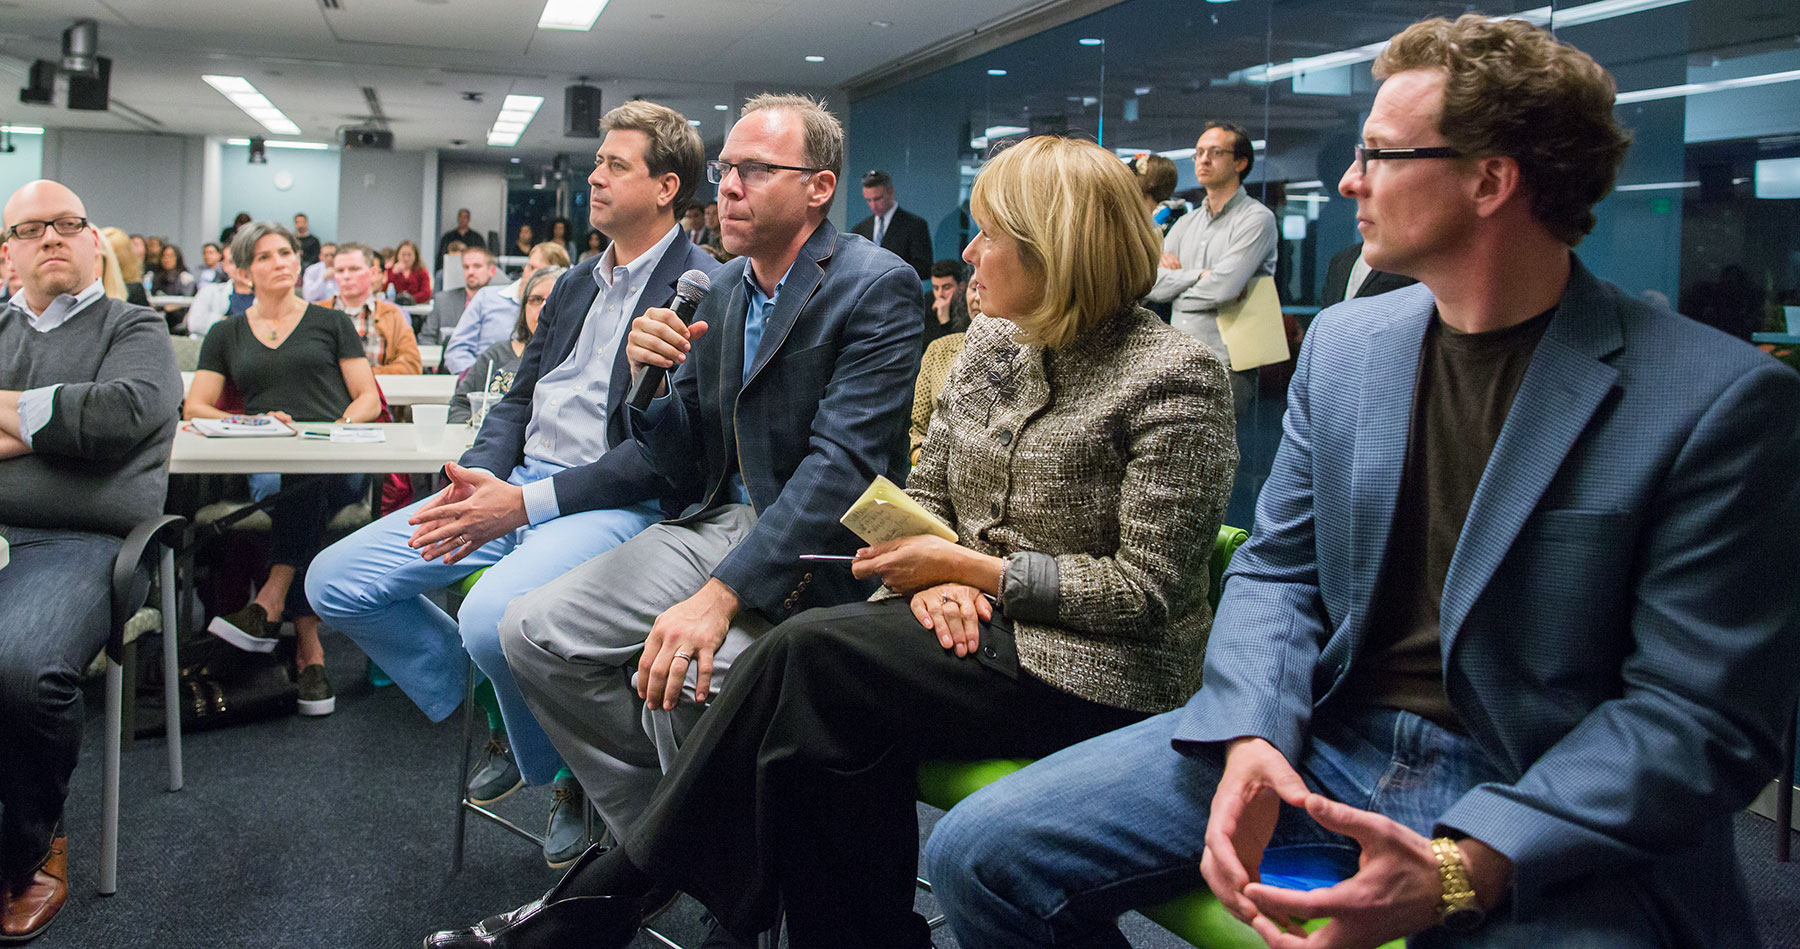 Judge Kris Krane, principal and managing partner at 4Front Advisors and New England Cannabis Coalition board member, speaks during #StartupHigh at NERD New England Research and Development Center in Cambridge, Massachusetts on Friday, March 18 2016.